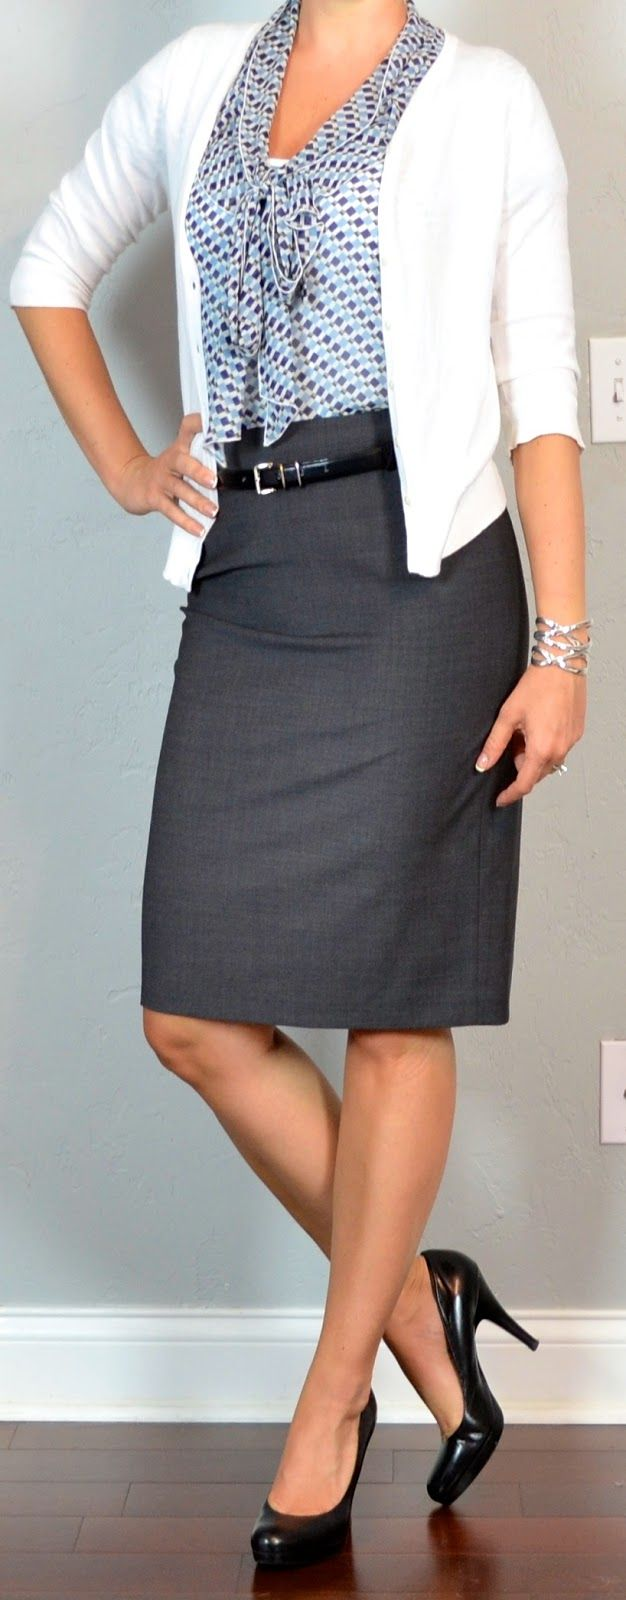 post: grey pencil skirt, blue pattern tie-neck blouse, white cardigan ...